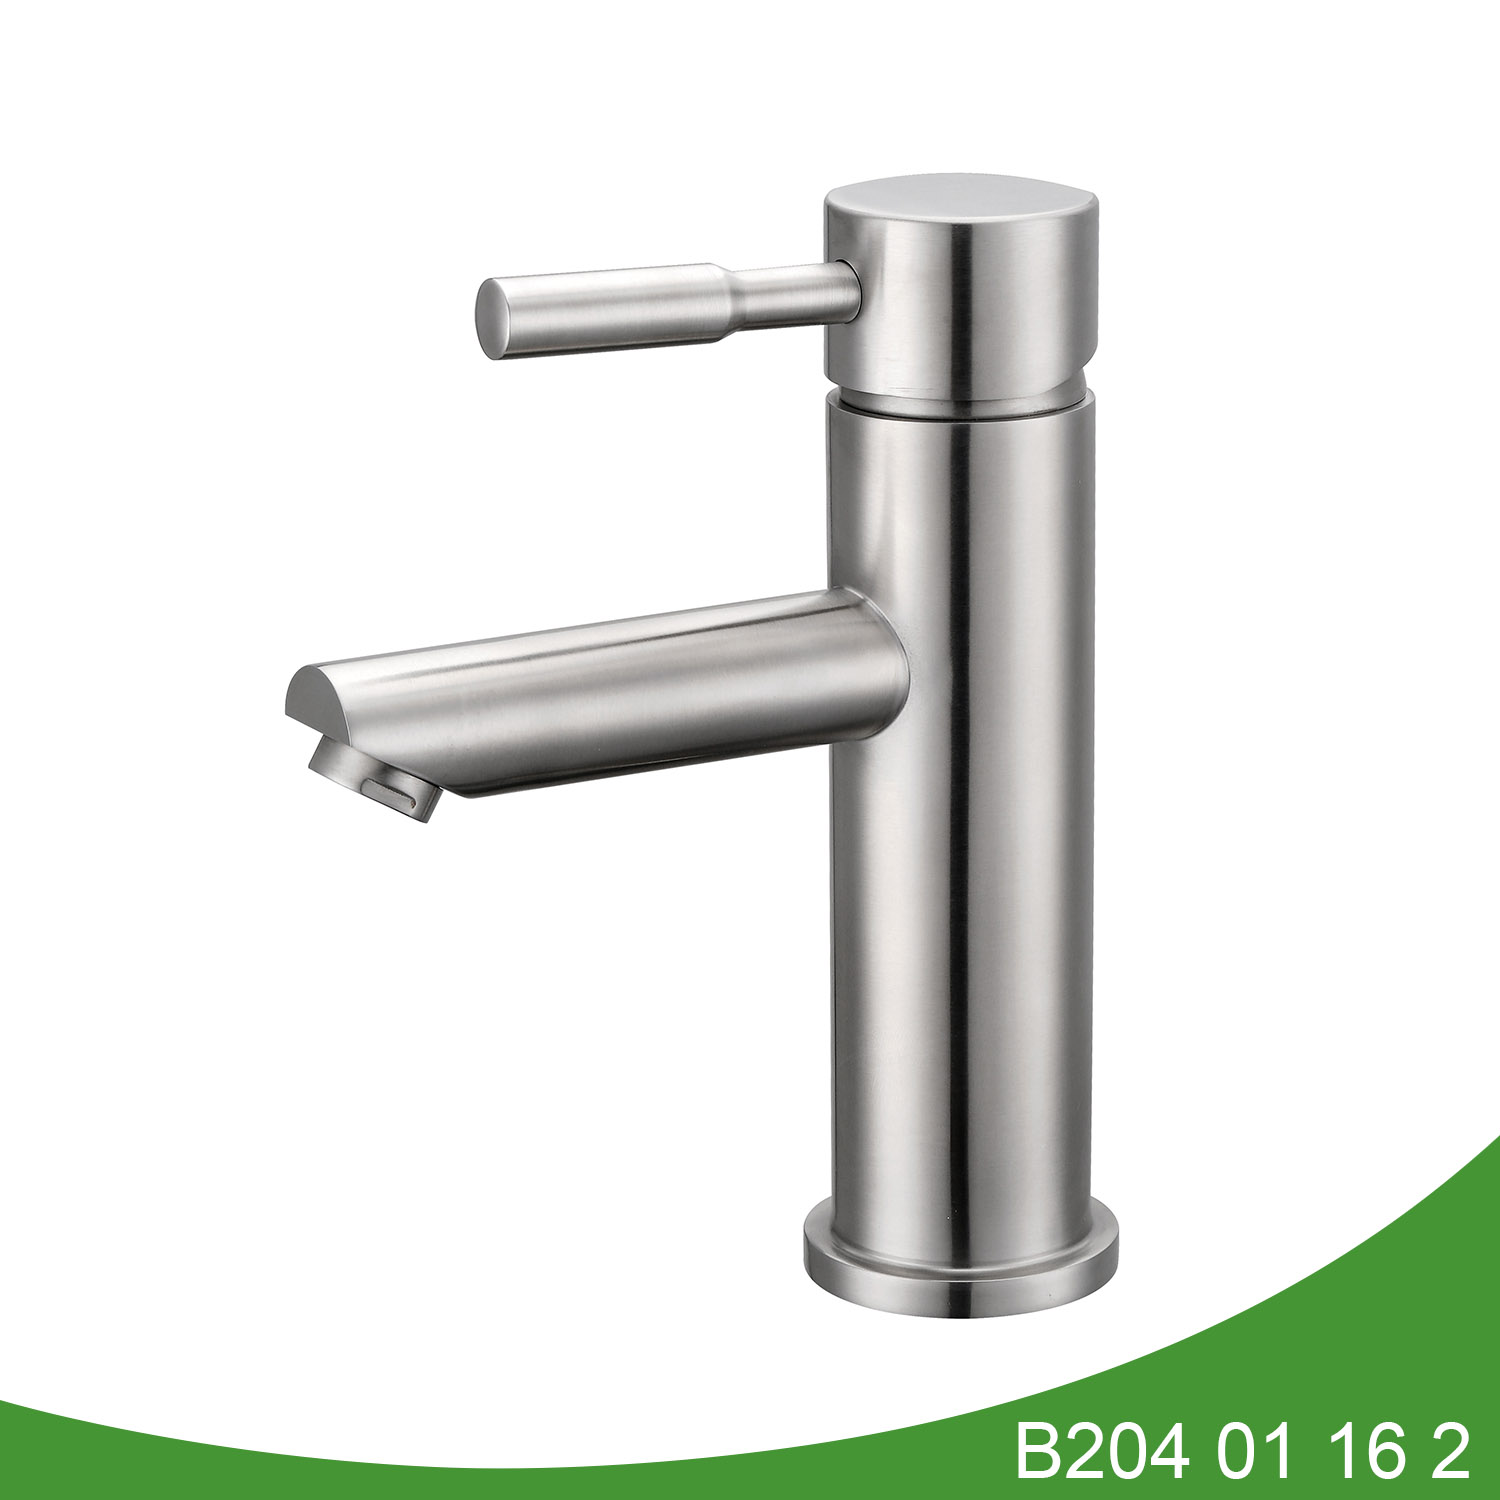 Single handle stainless steel basin faucet B204 01 16 2